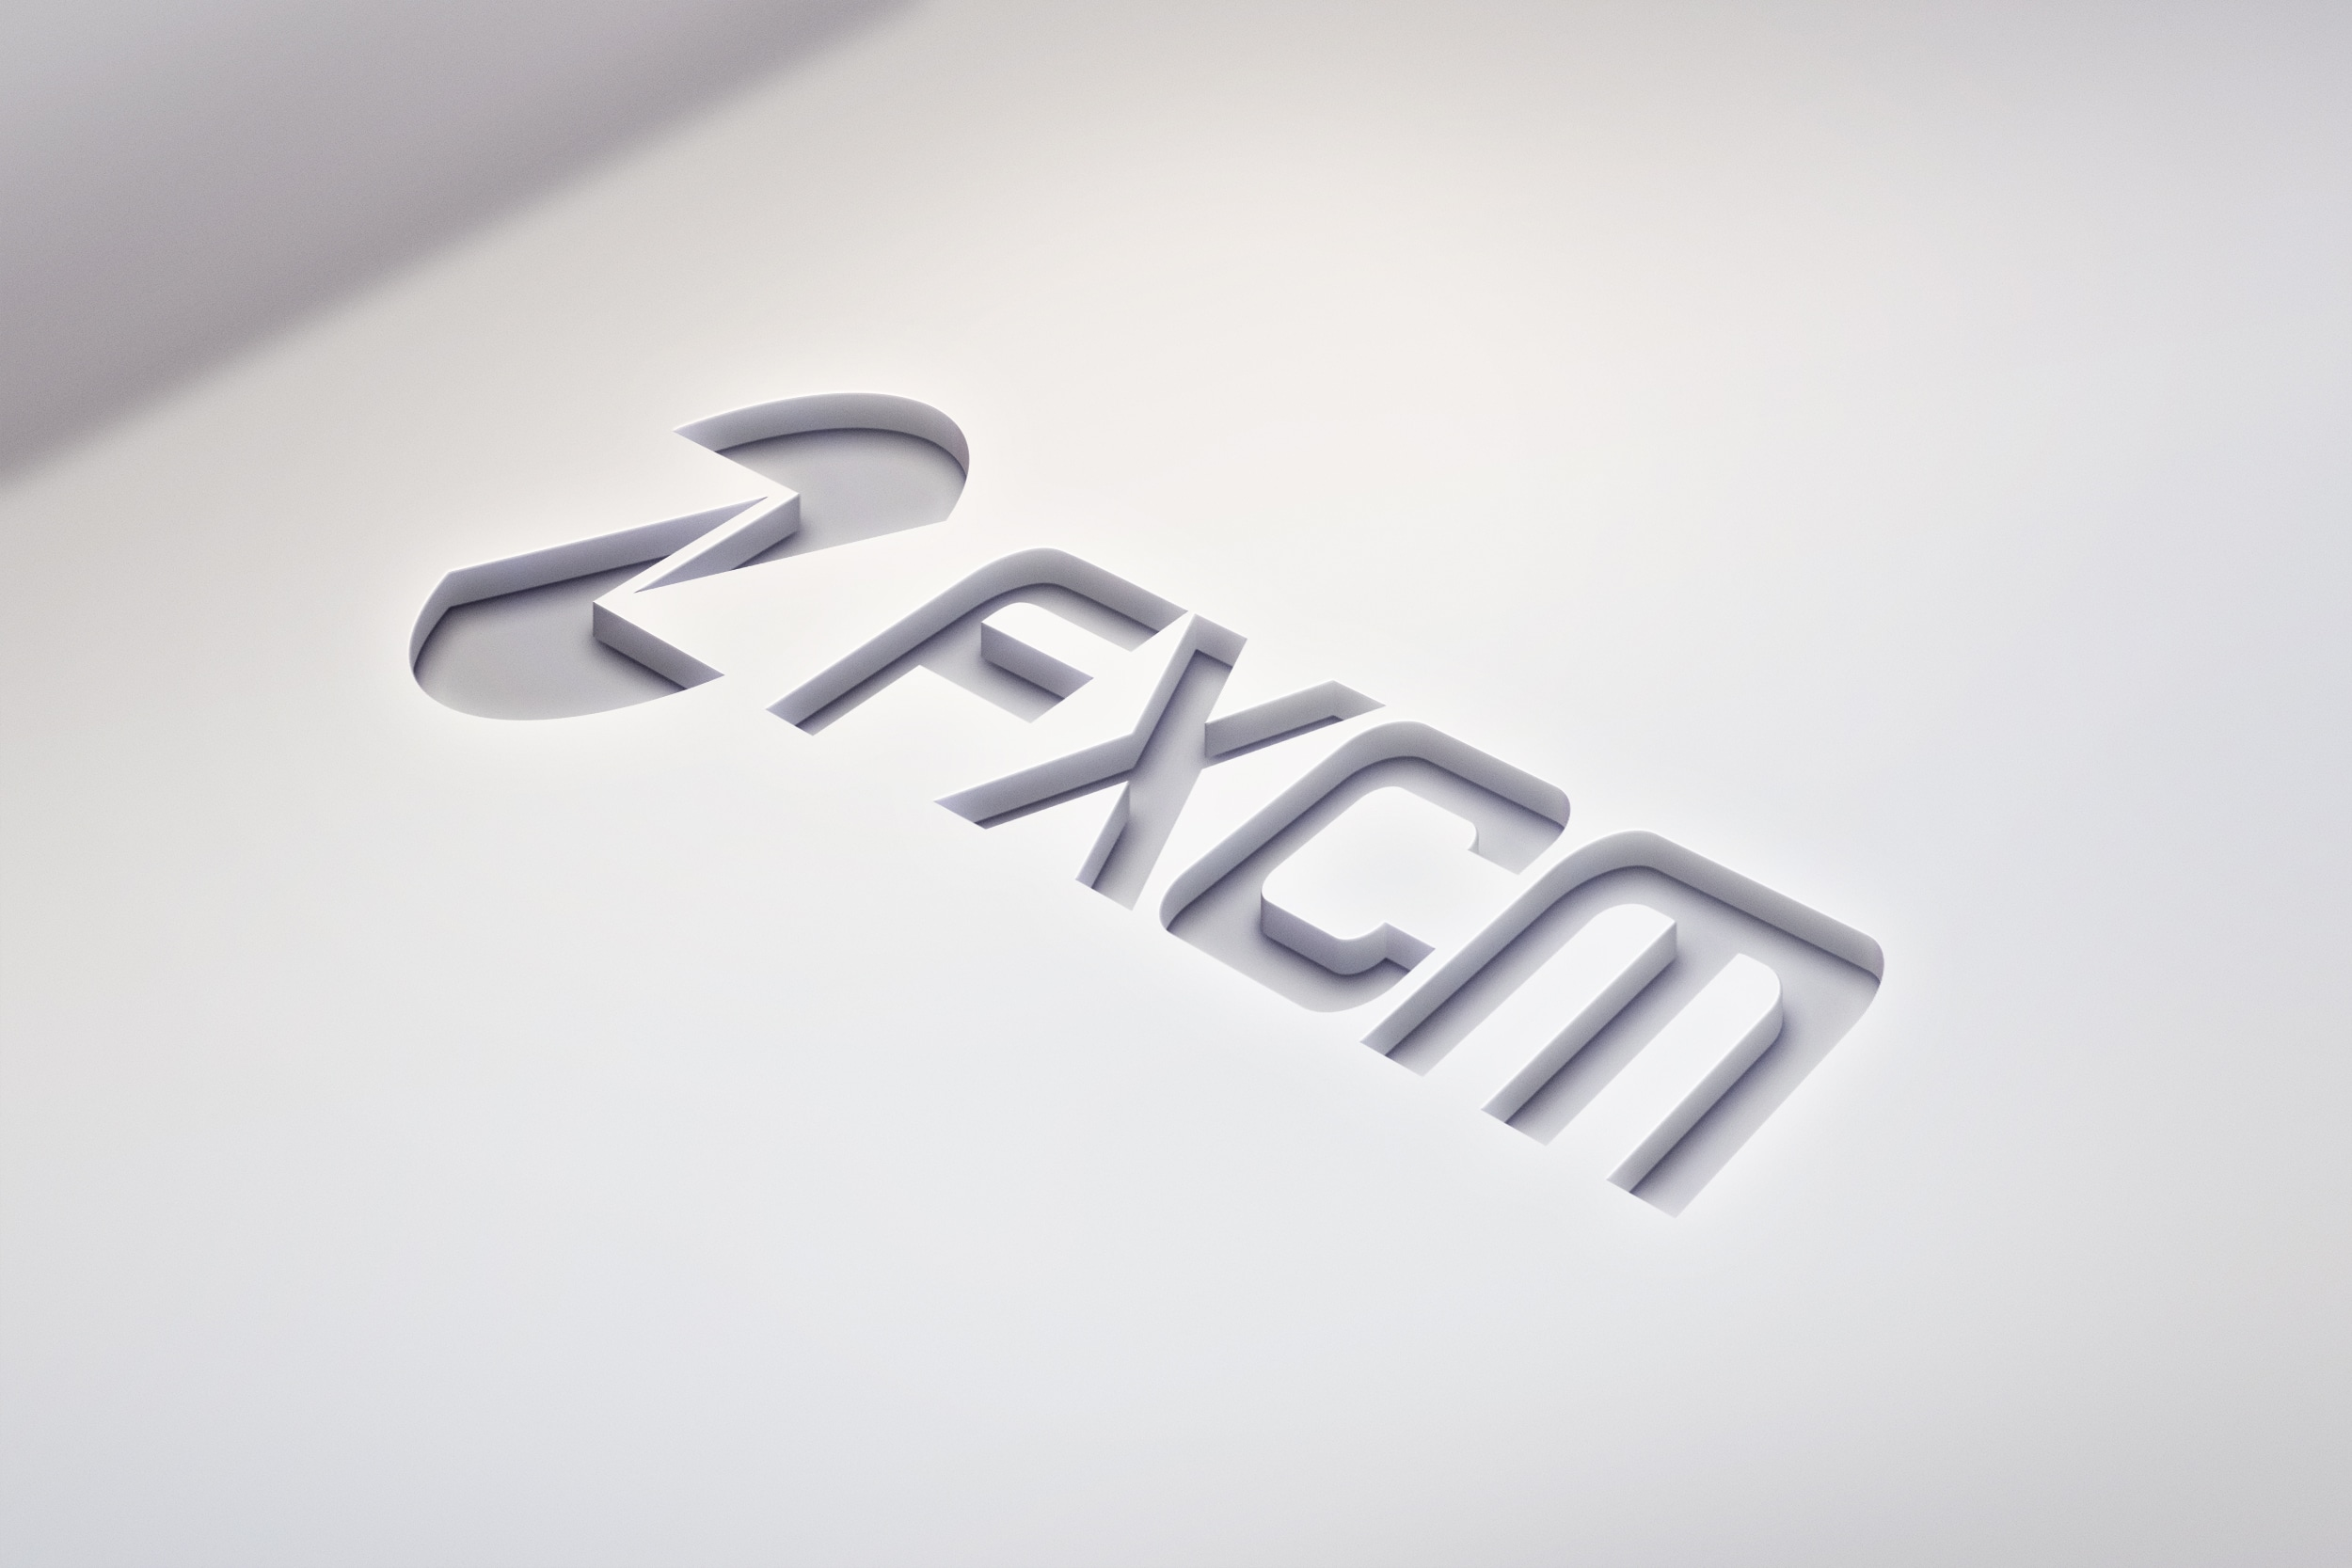 FXCM Revenues per Million Rise, Total Revenues Grow Over 16% YoY